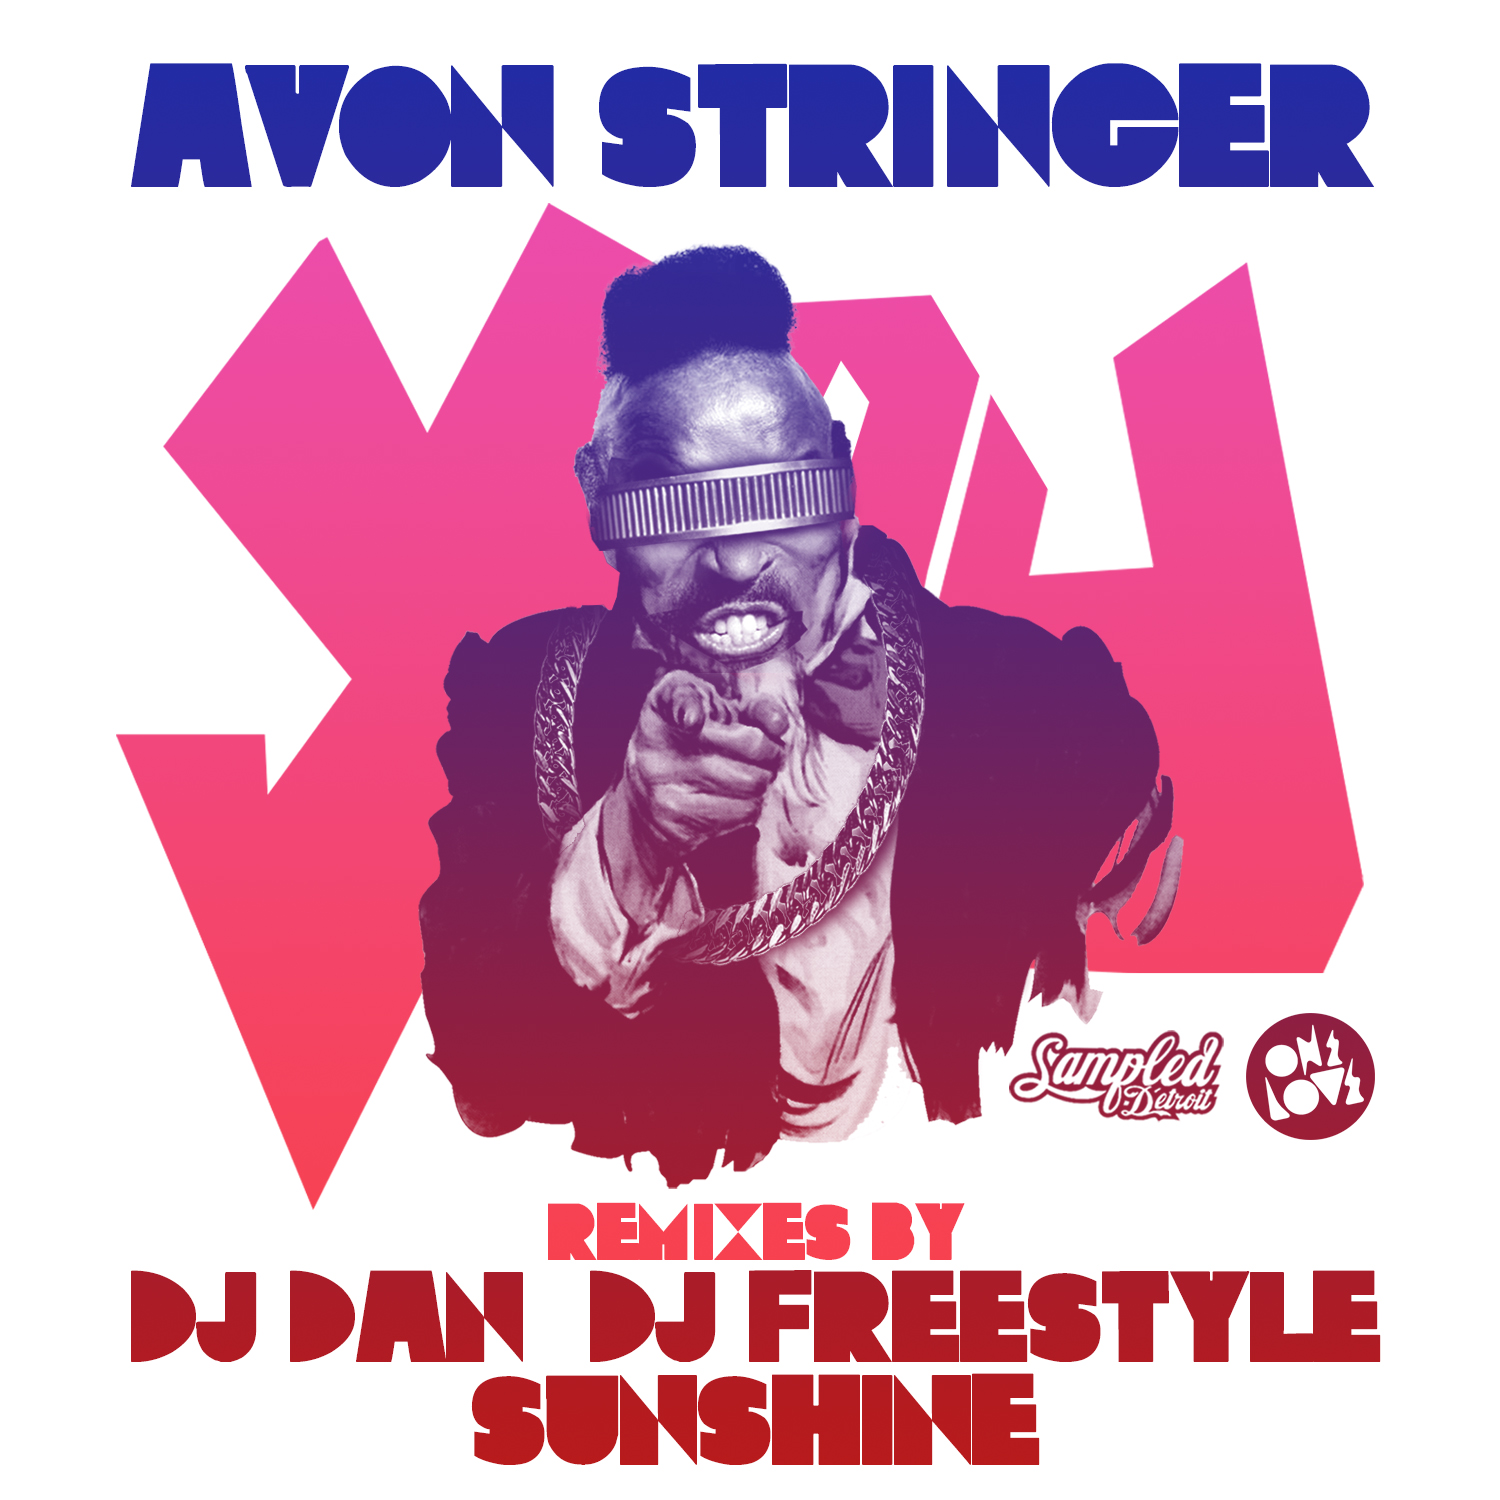 AVON STRINGER - YOU onelove logo